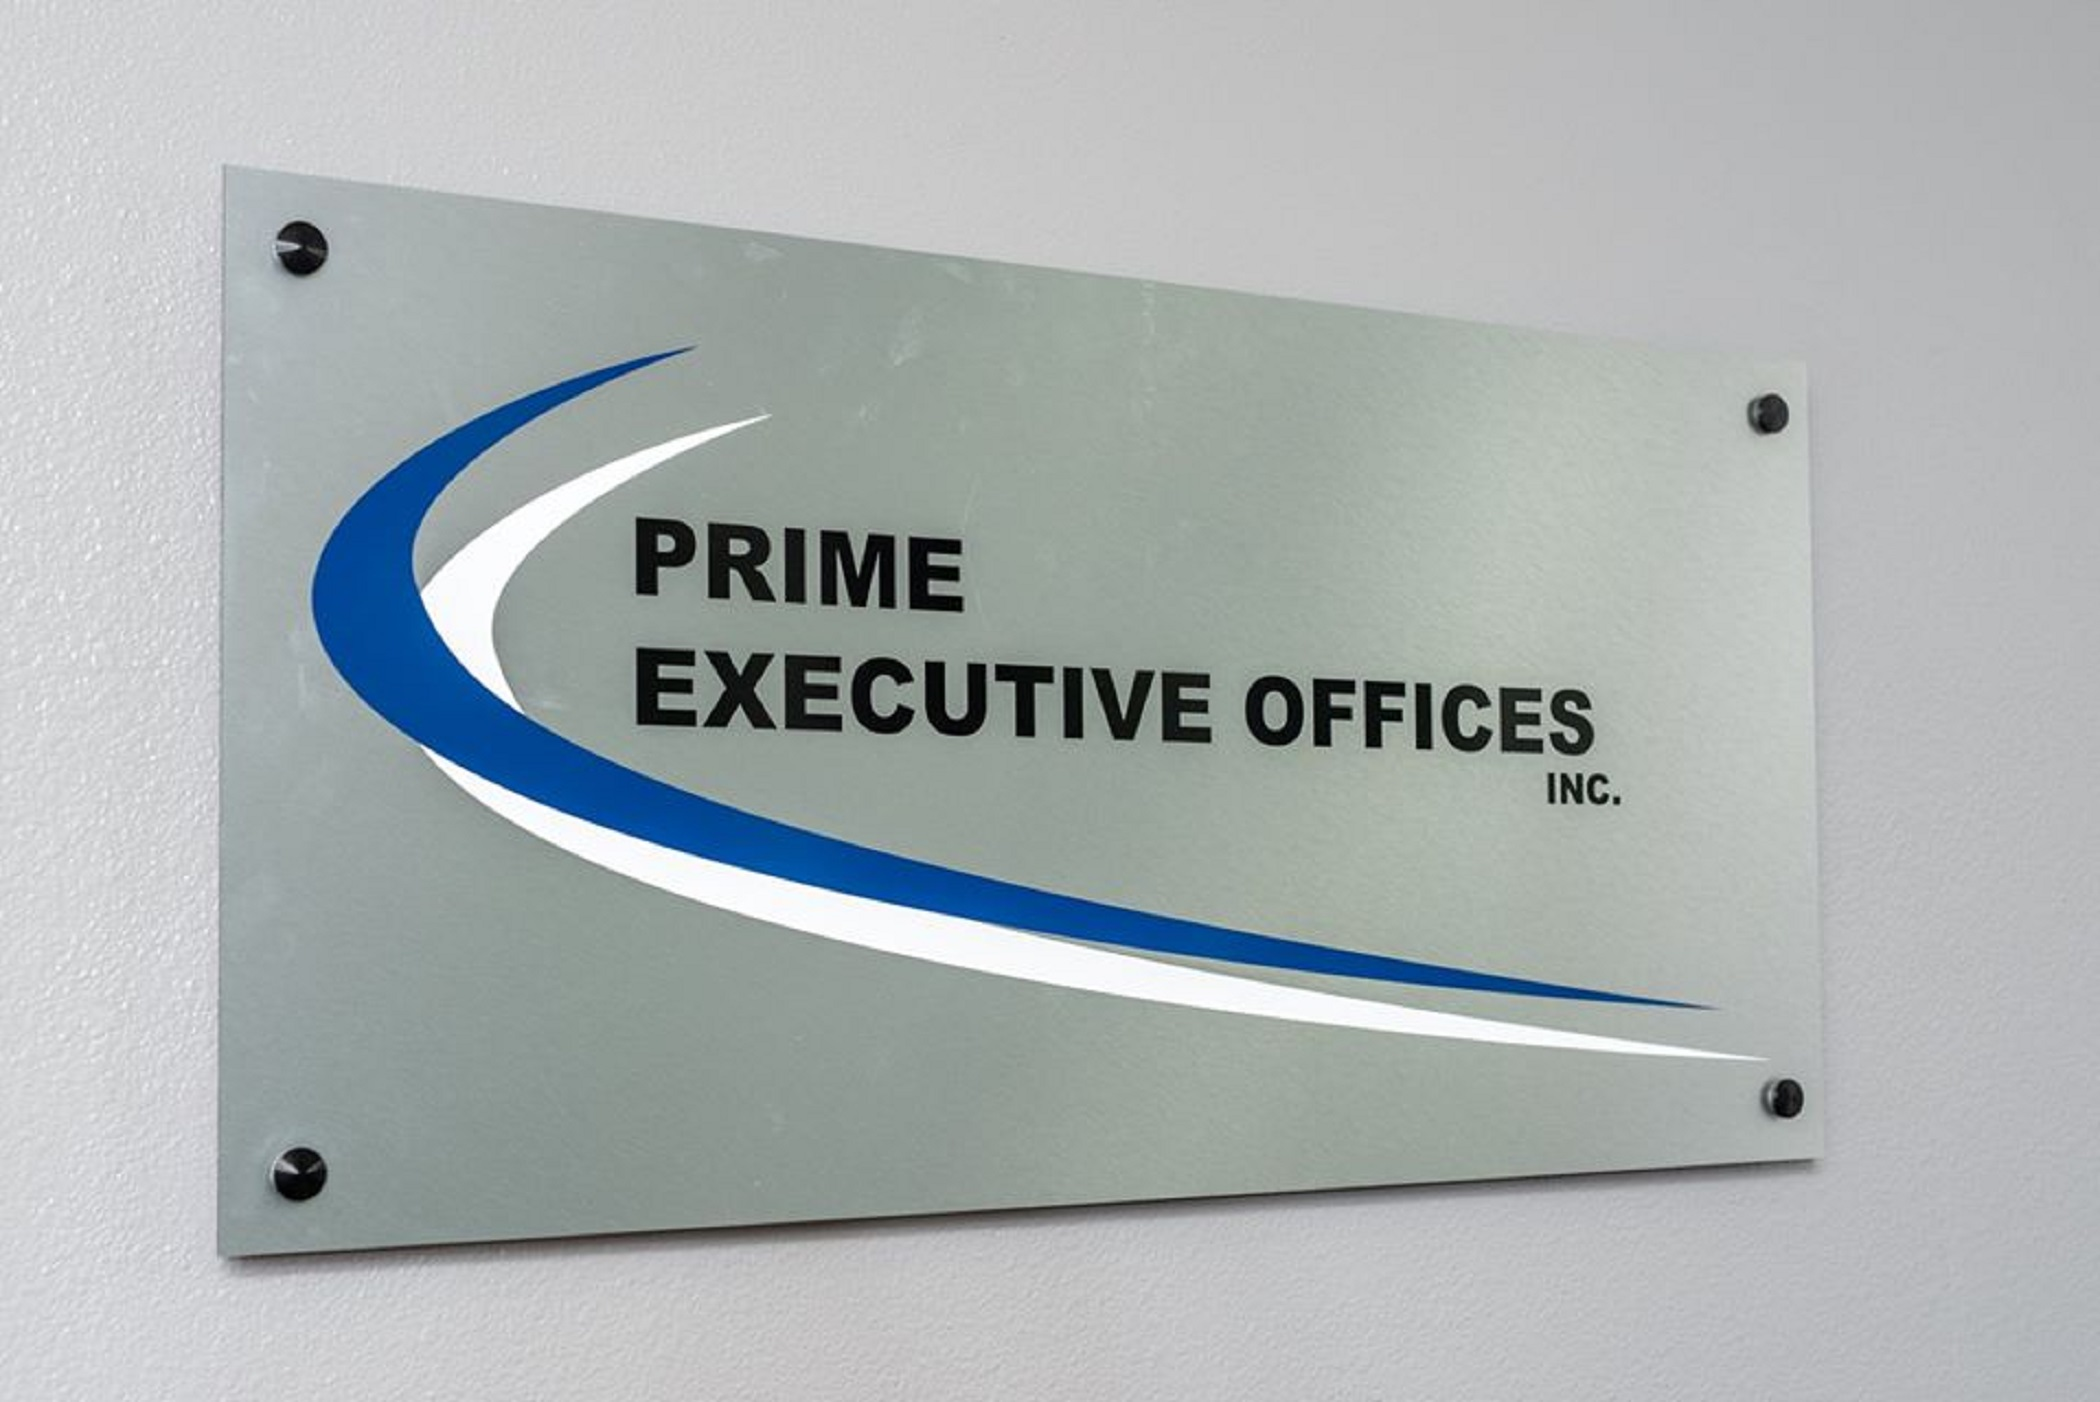 Prime Executive Offices, Inc.